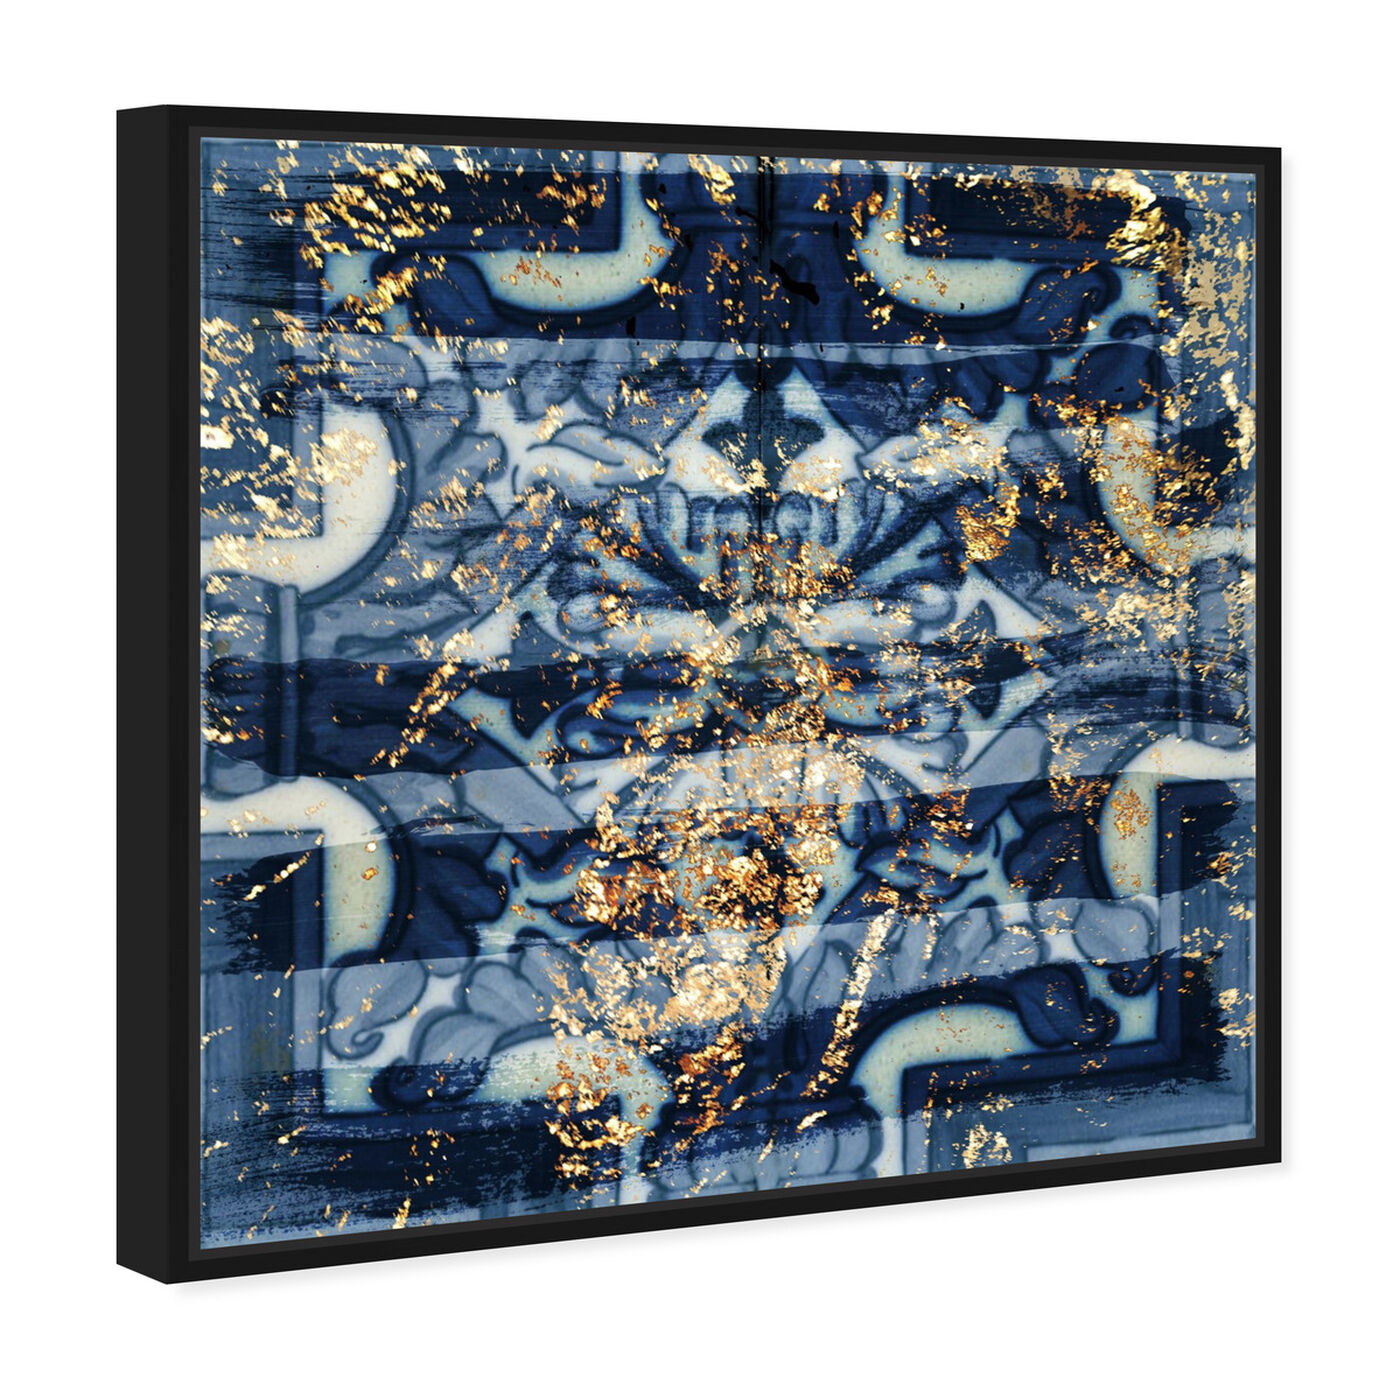 Angled view of Tileaux featuring abstract and patterns art.